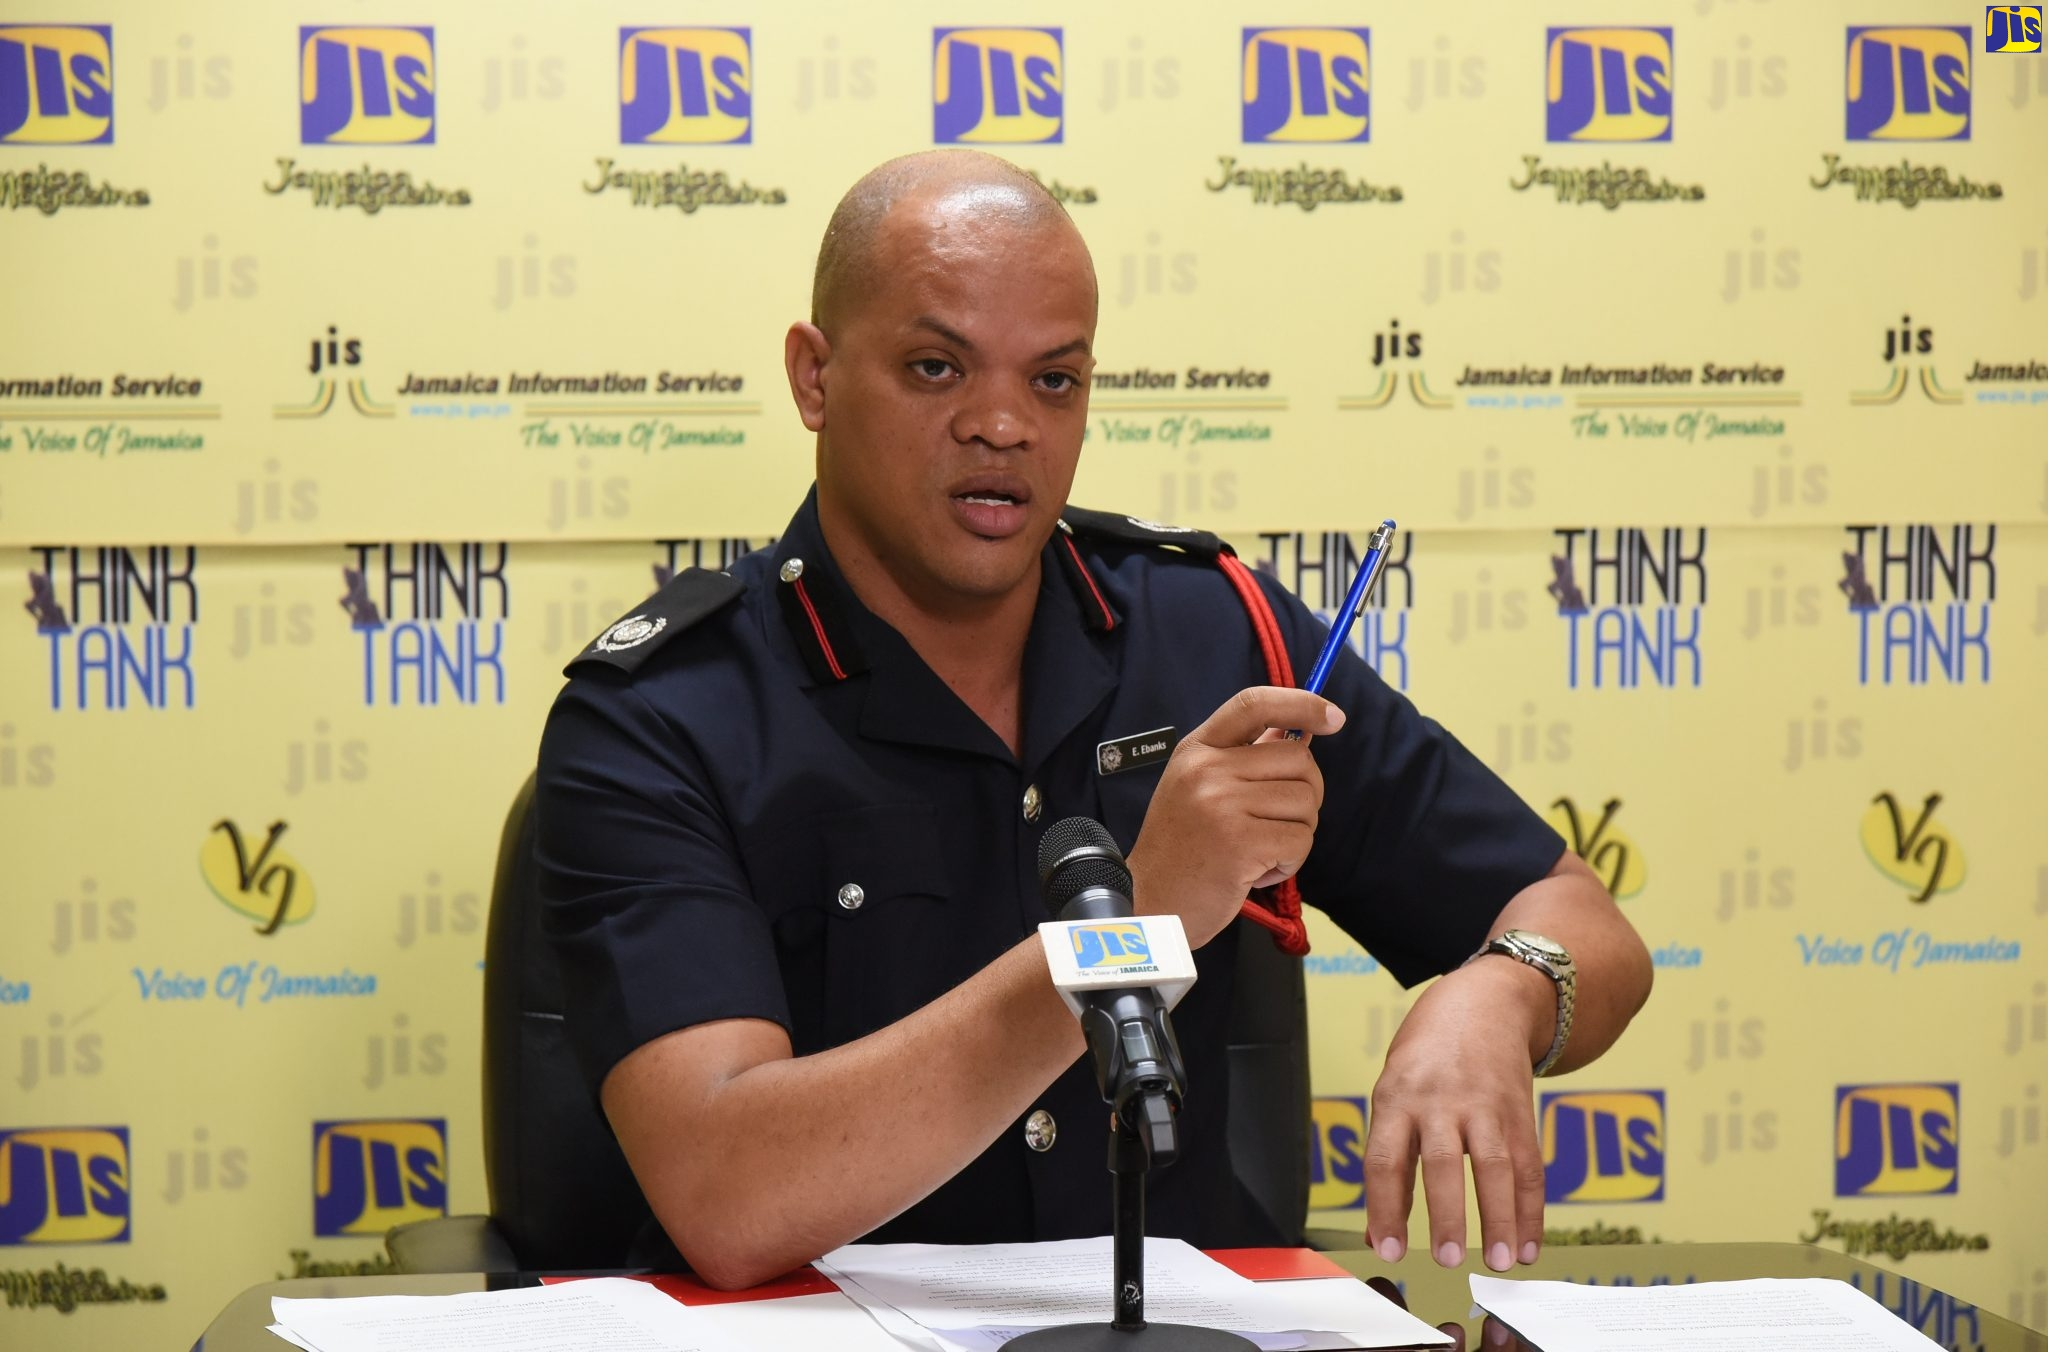 JFB Encourages Persons To Report Leaking Fire Hydrants